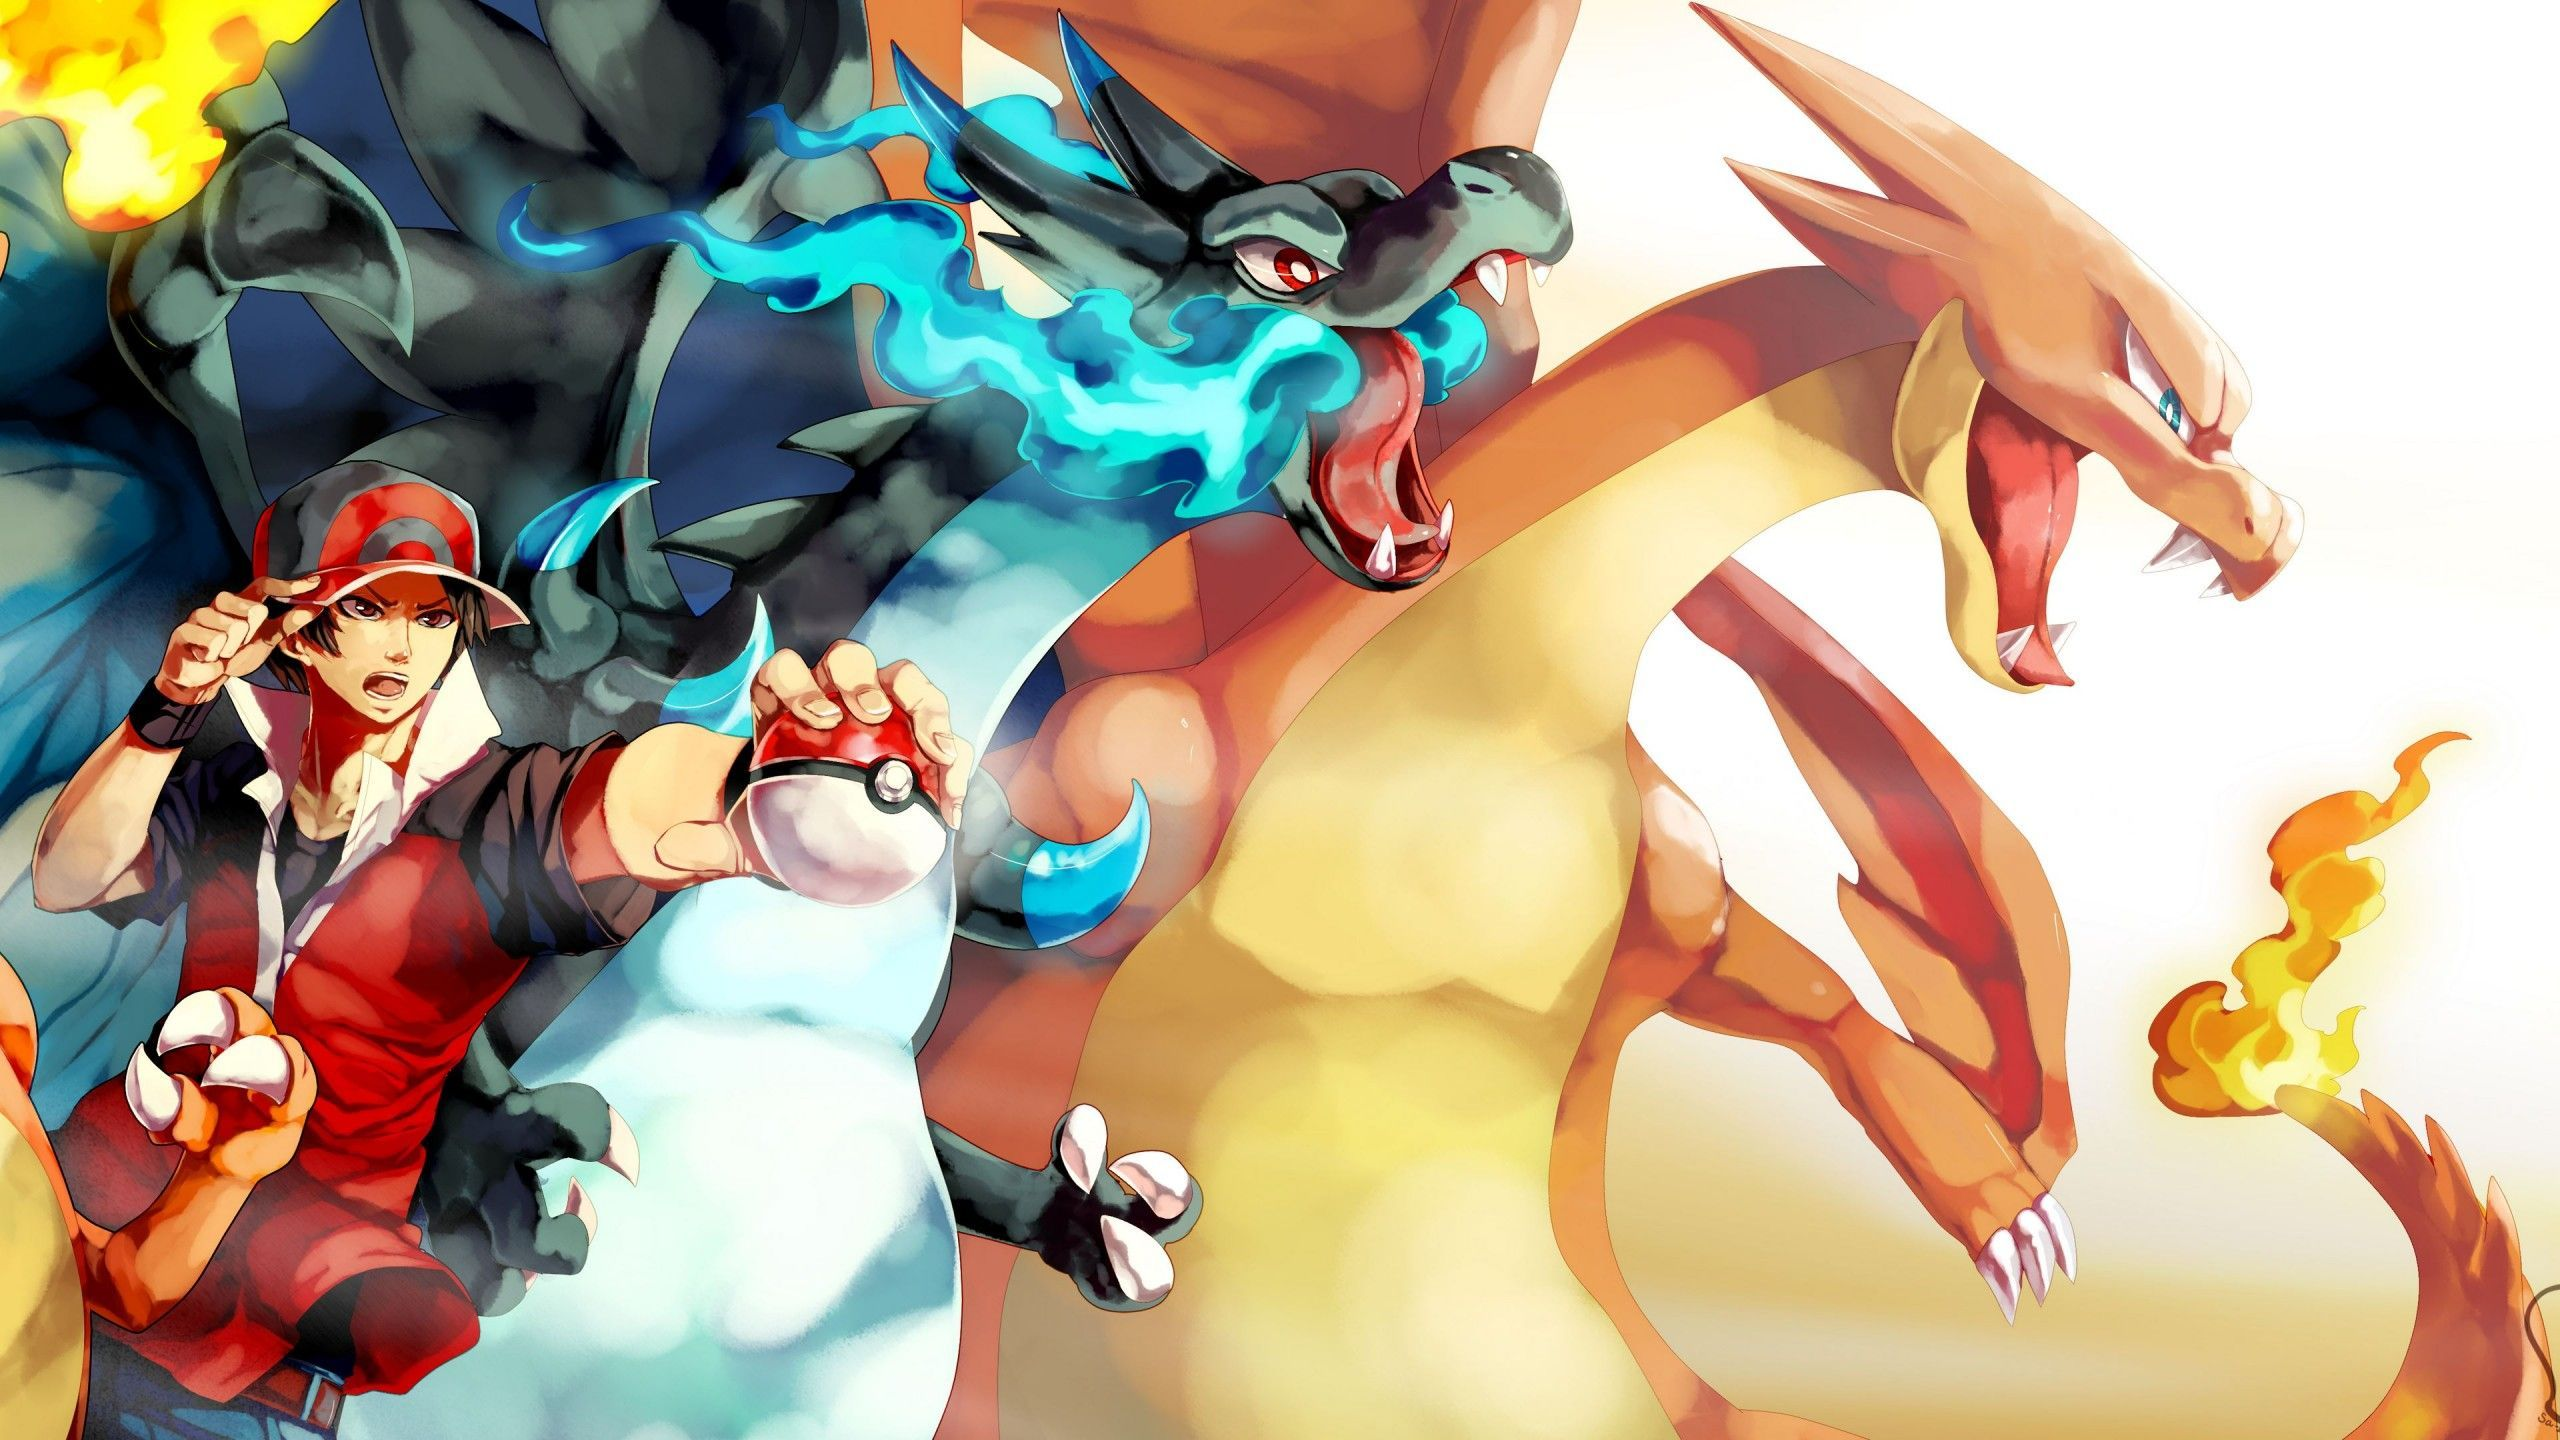 free pokemon gold 128x160 live wallpapers mobile9